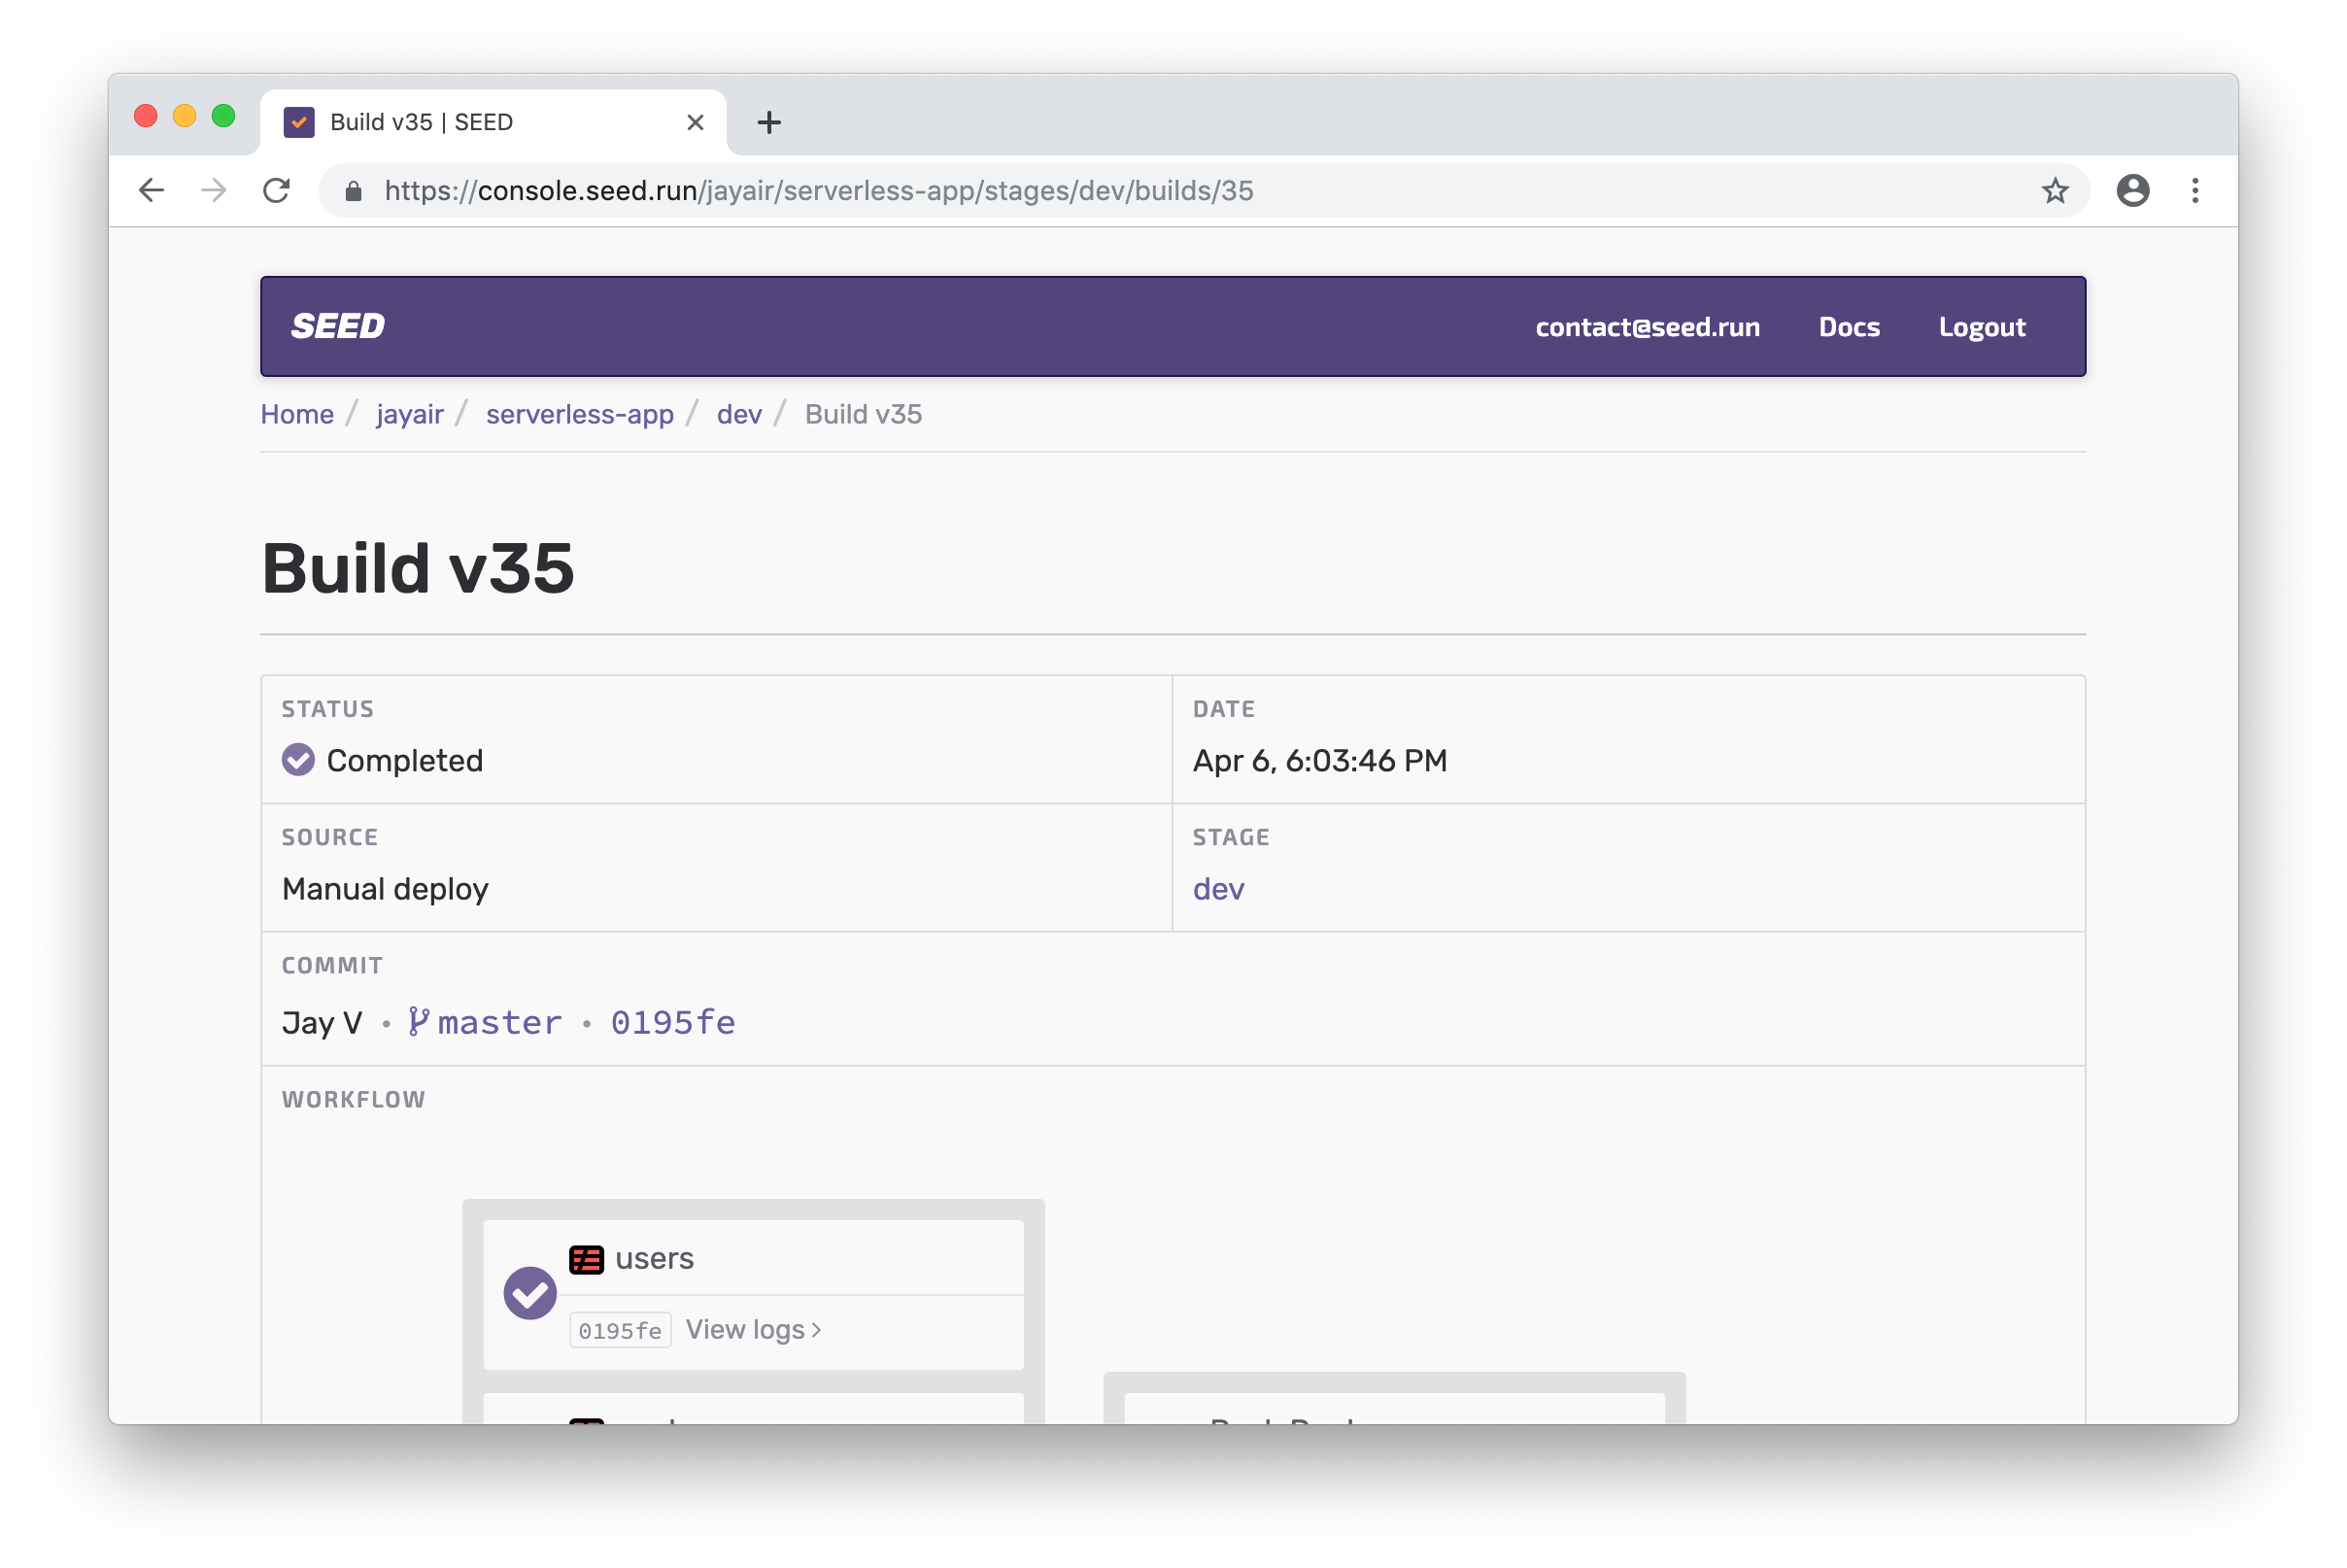 Seed build page in Chrome